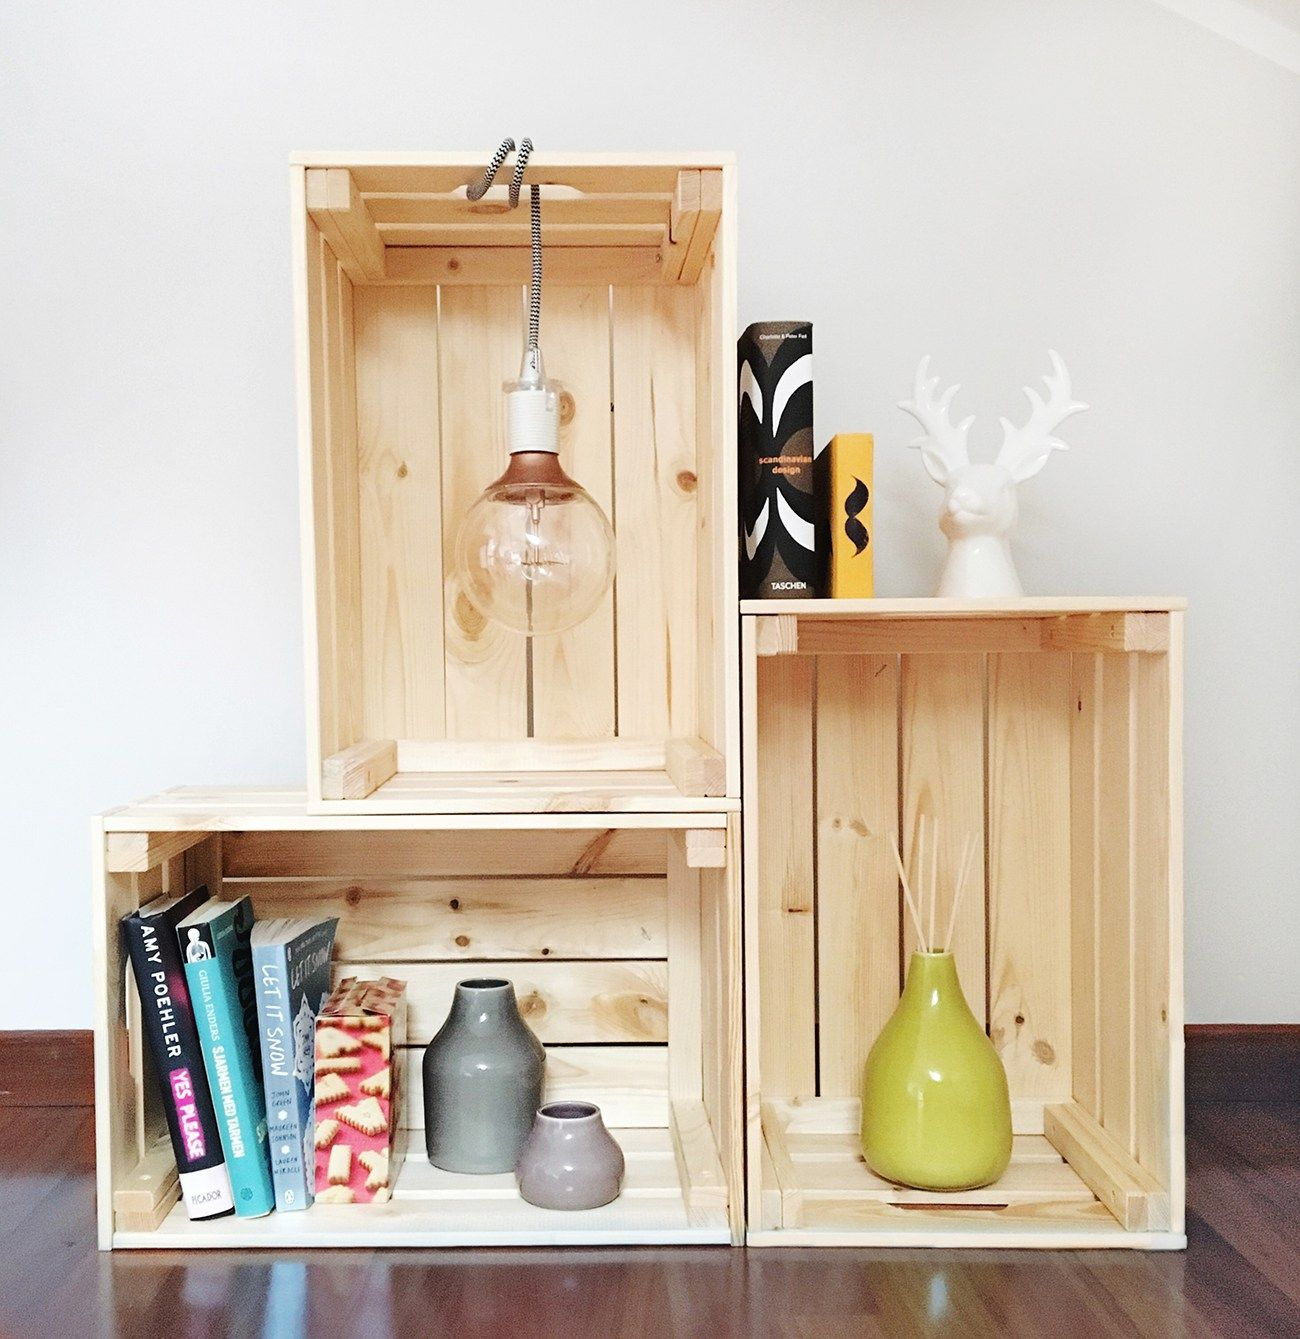 storage with hanging a light hanging light and cord from ikea